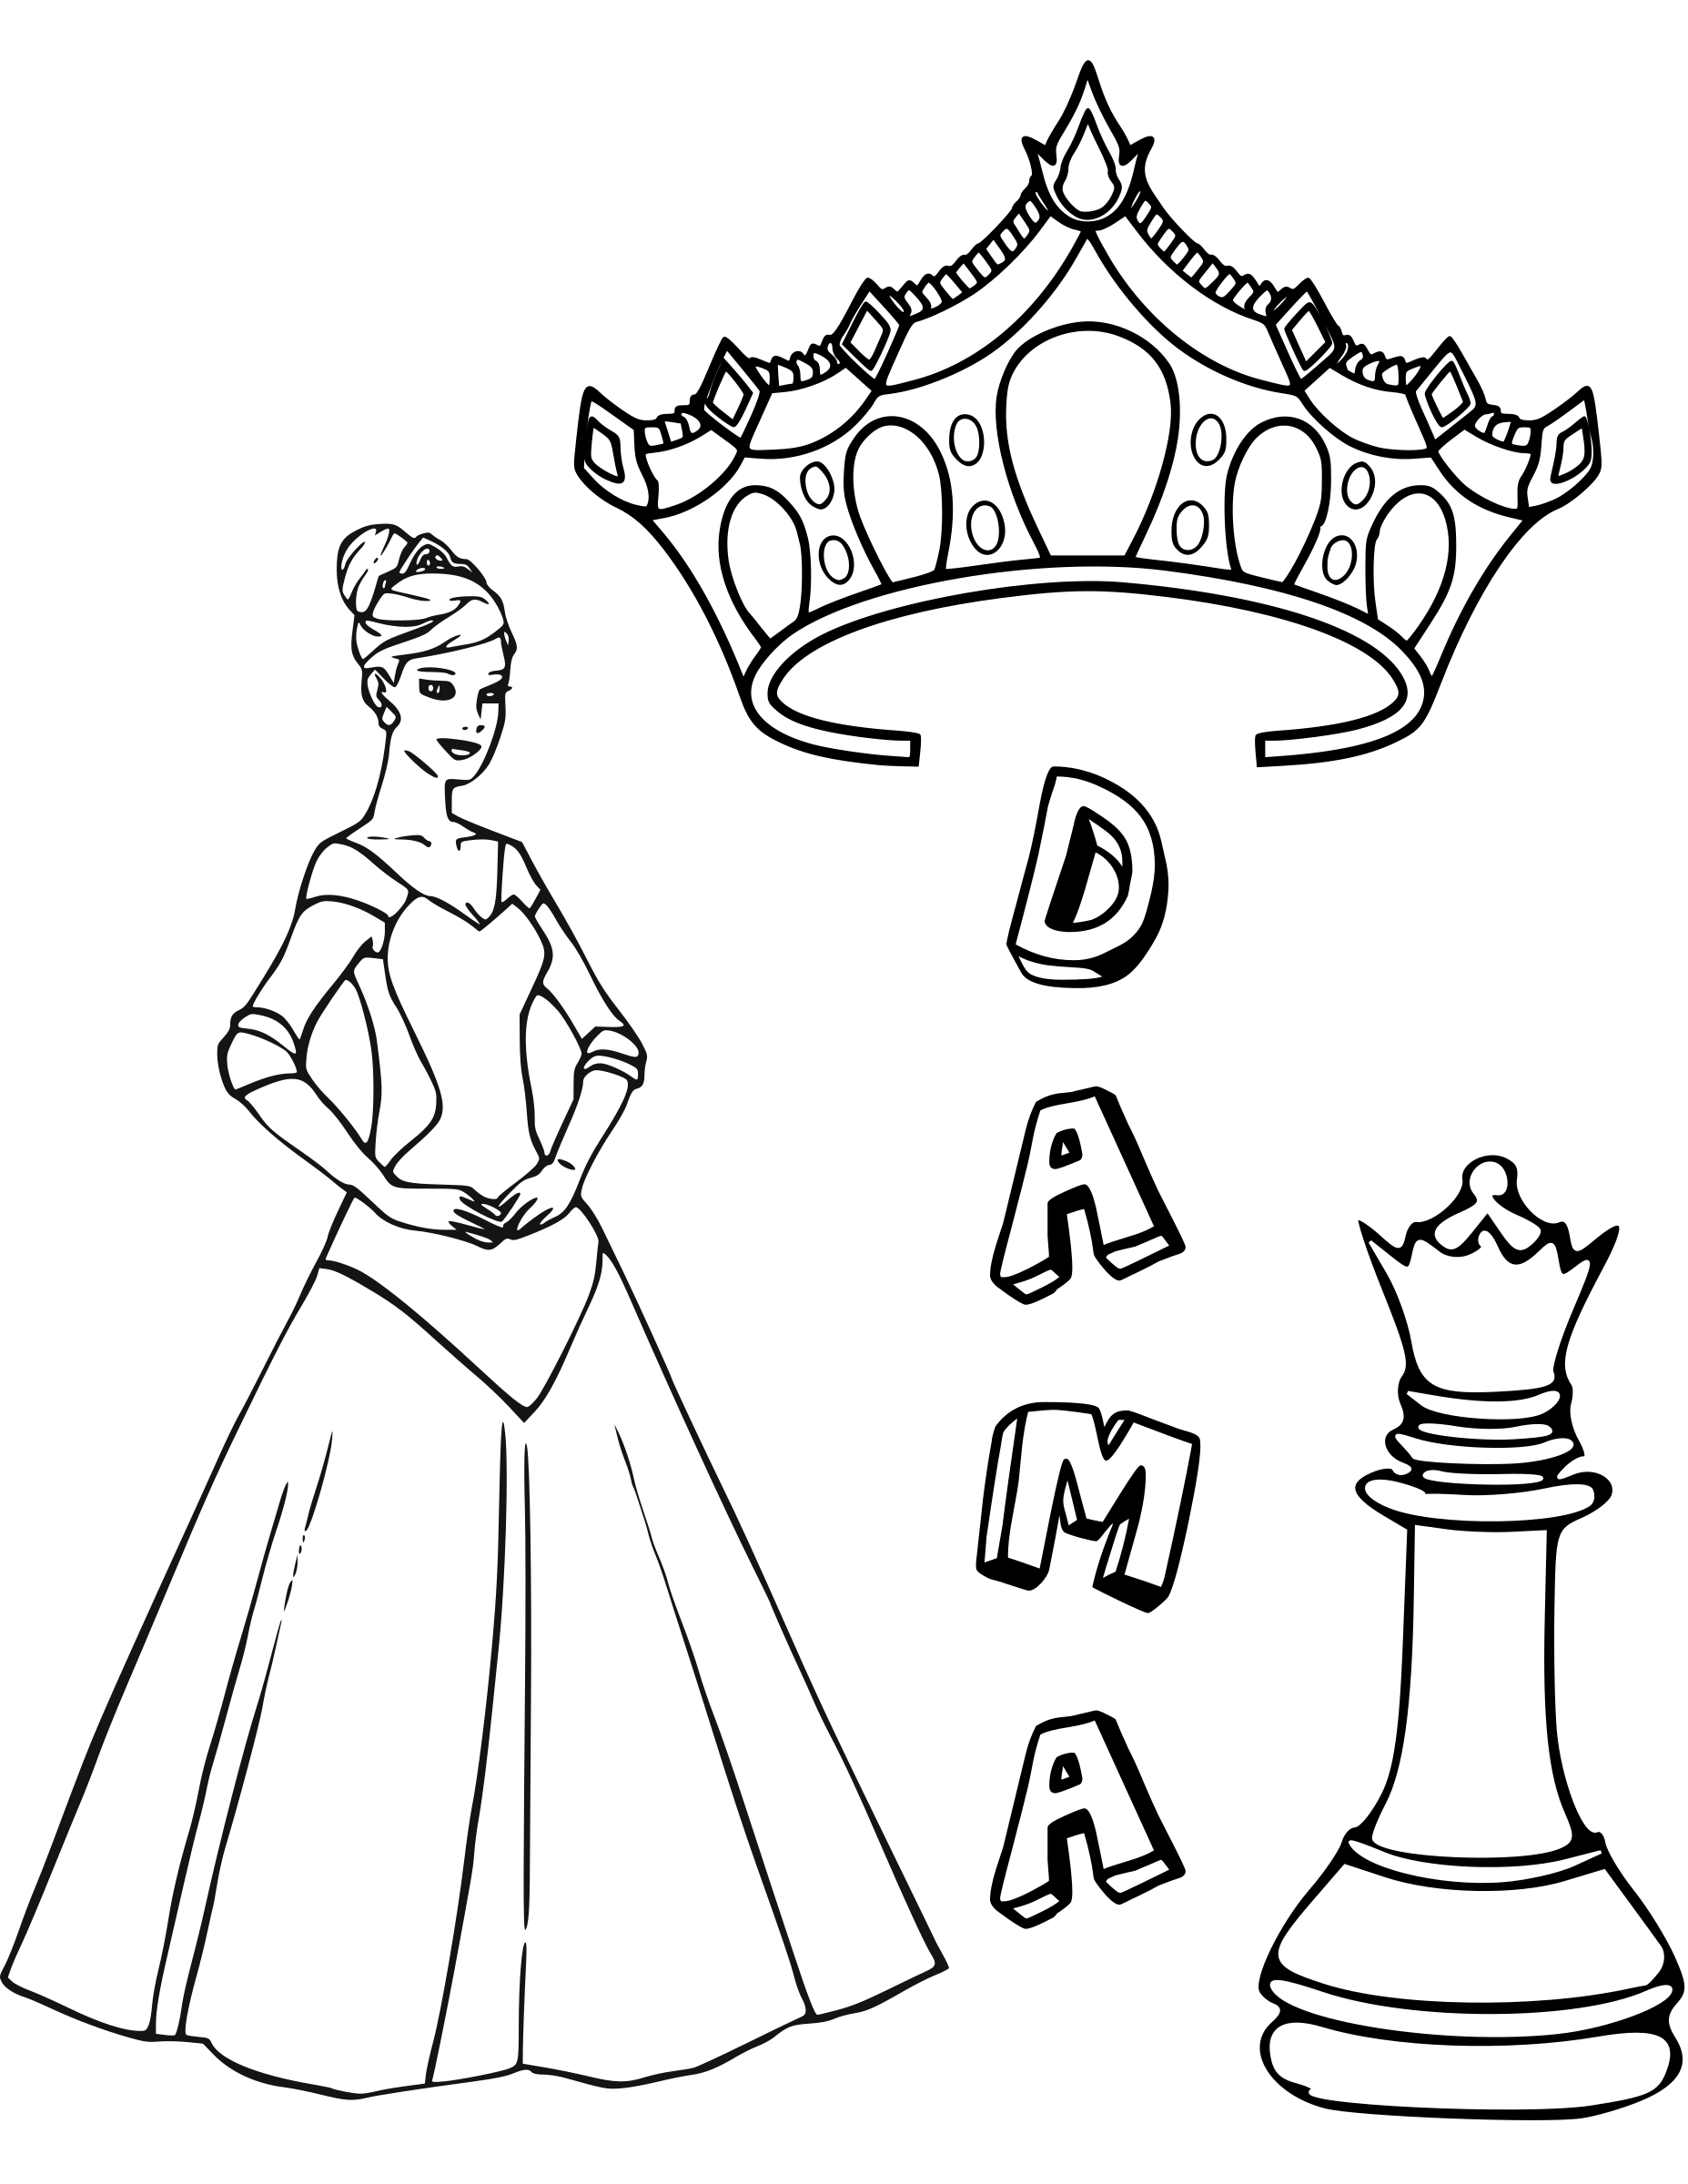 Chess coloring book  / Dibujo Ajedrez para colorear -5- by DG-RA